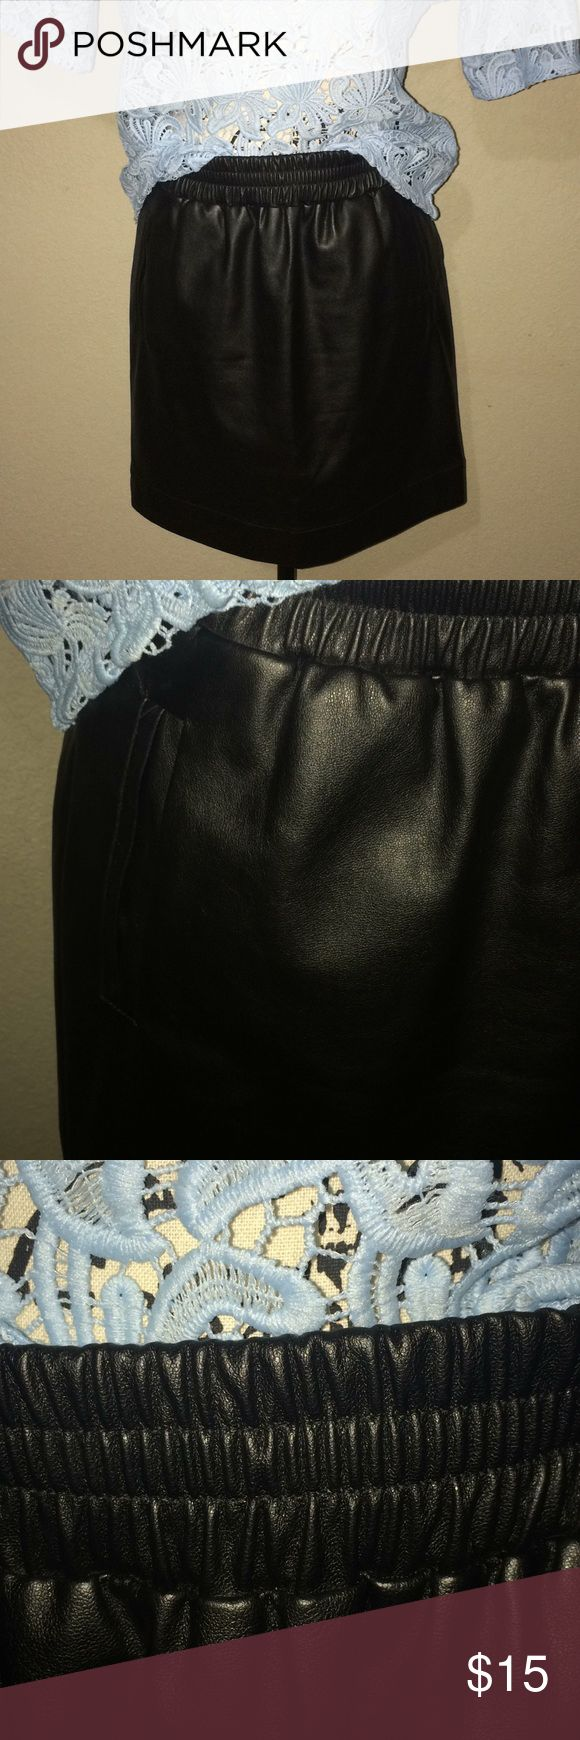 """Loft Faux Leather Mini Skirt Faux leather  Black Zipper back 17 1/2 """" Long 2 side pockets Thick stretchy waist band Lined inside Super cute and sexy! Great condition! LOFT Skirts Mini"""